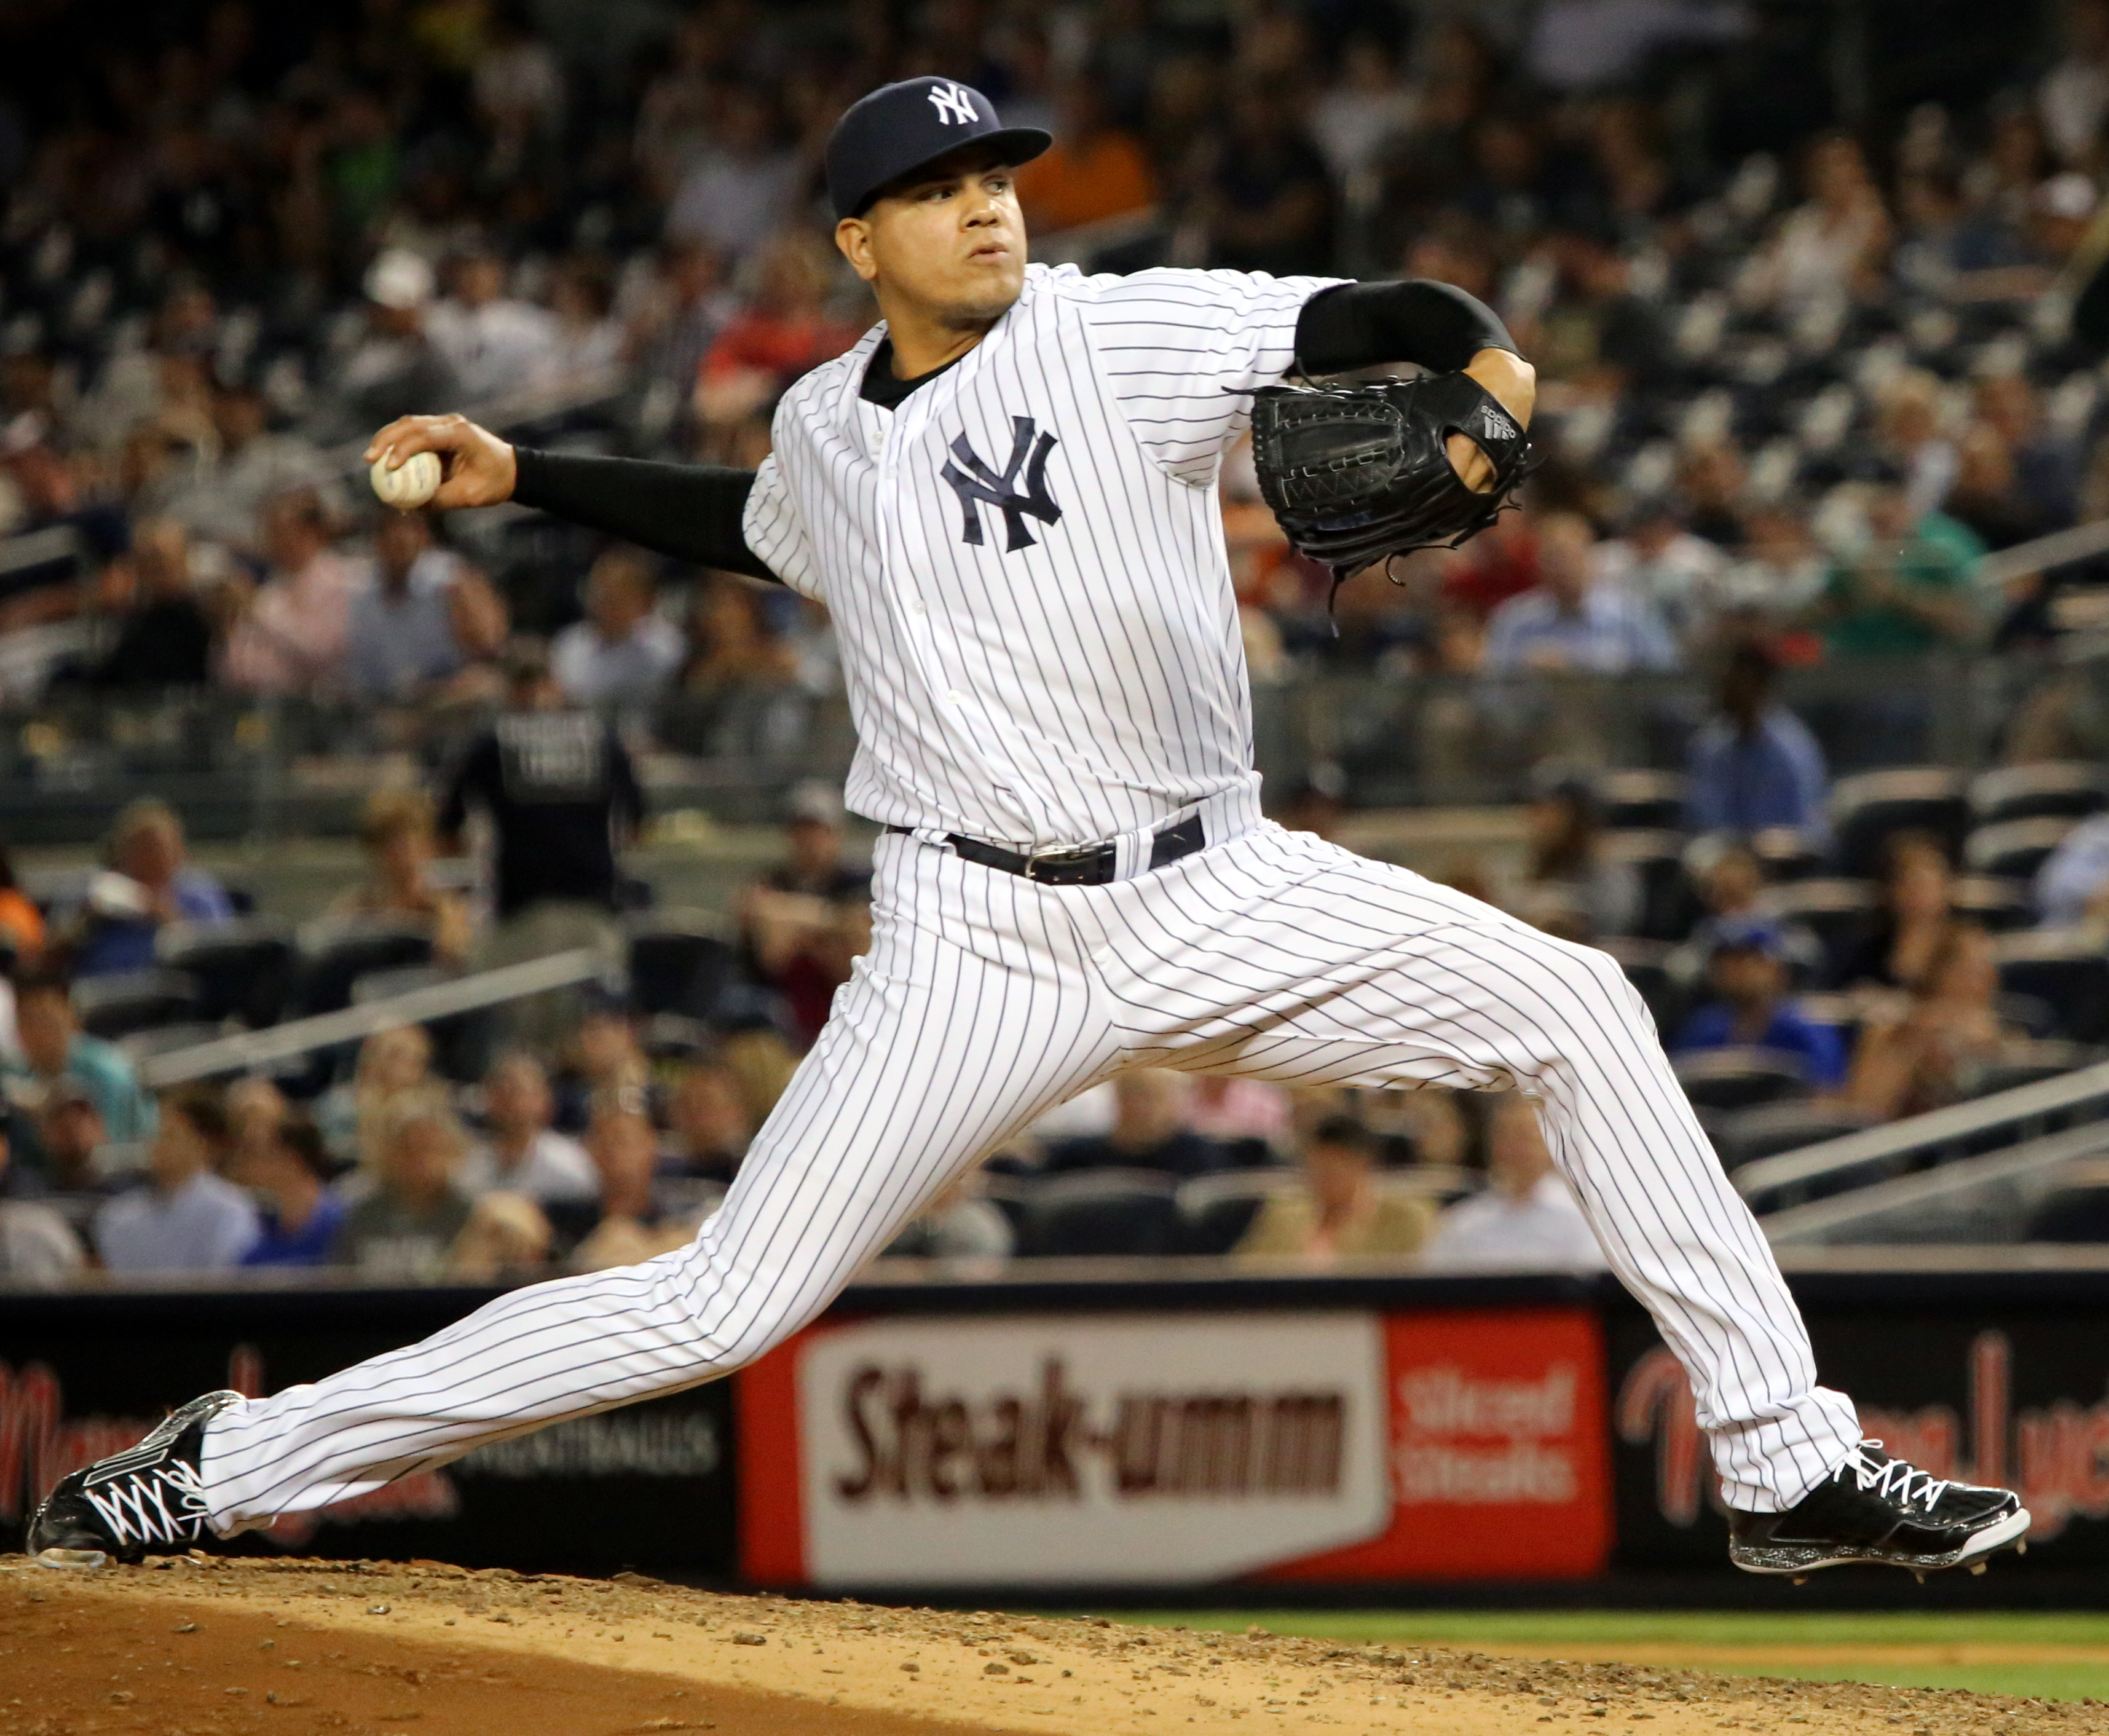 The 30-year old son of father Jamie and mother Maria Dellin Betances in 2018 photo. Dellin Betances earned a  million dollar salary - leaving the net worth at 0.5 million in 2018